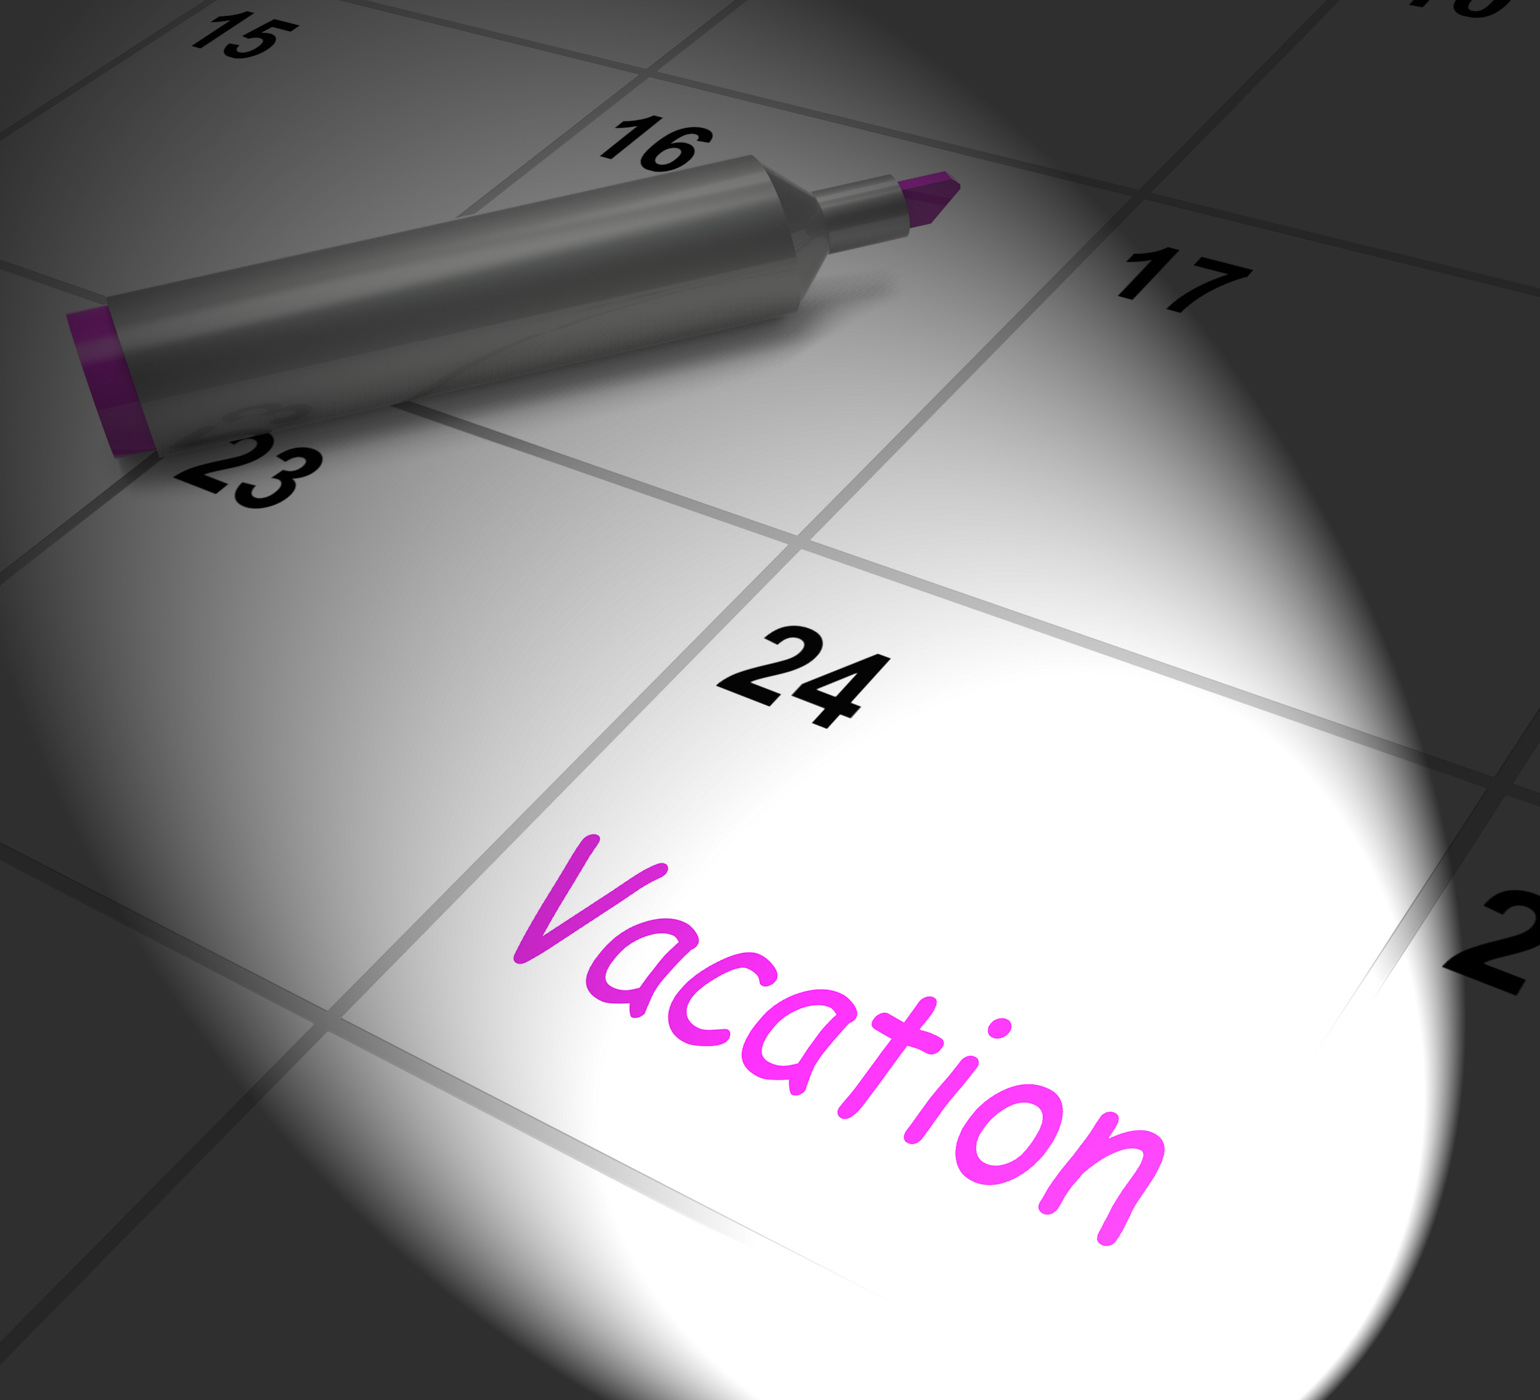 Vacation calendar displays day off work or holiday photo